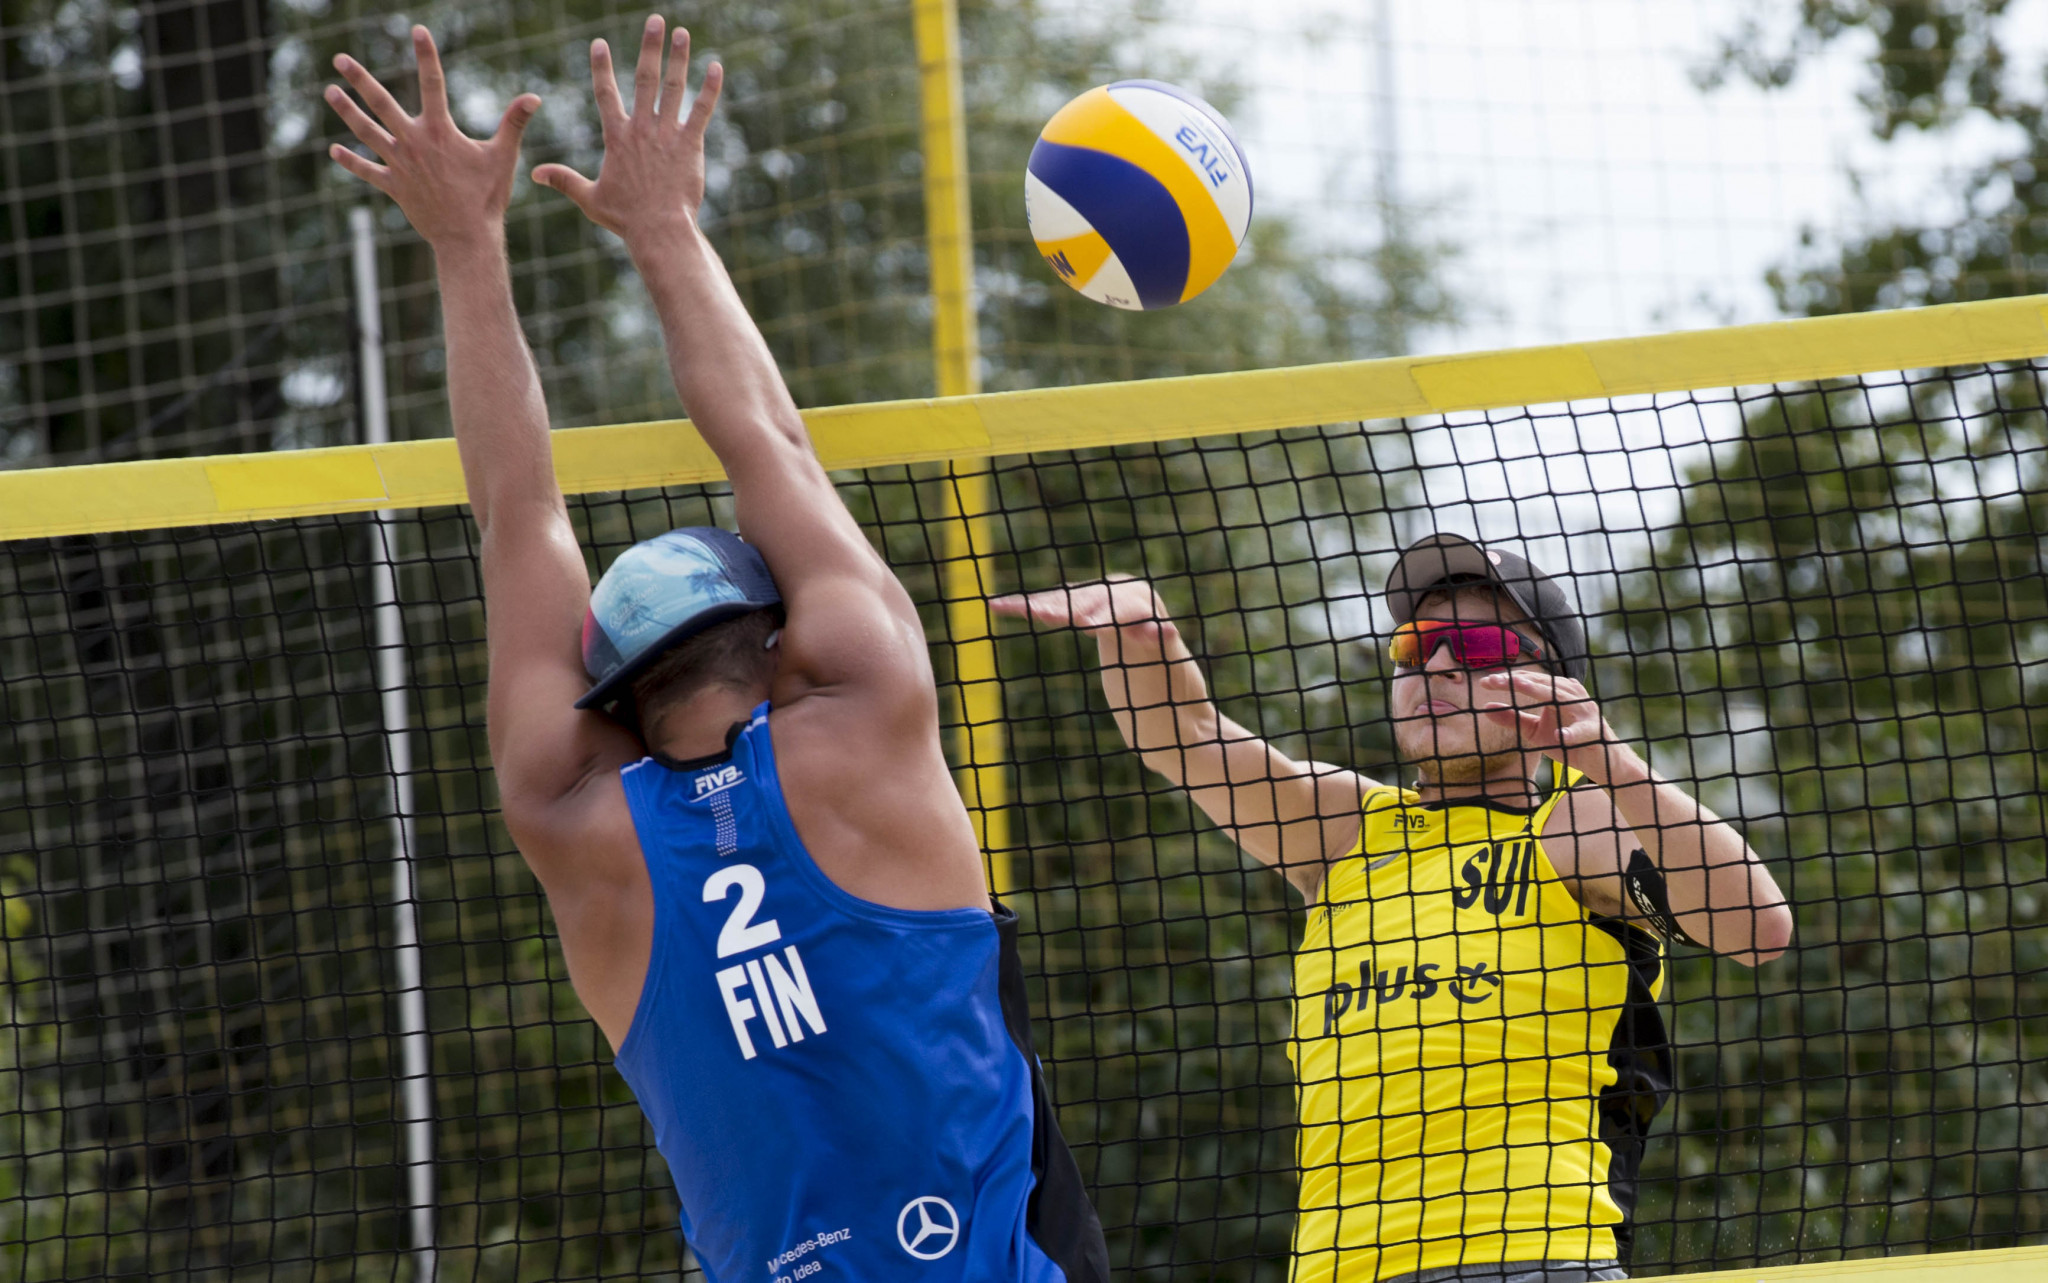 Top seeds Heidrich and Gerson through to main draw at FIVB World Tour event in Warsaw